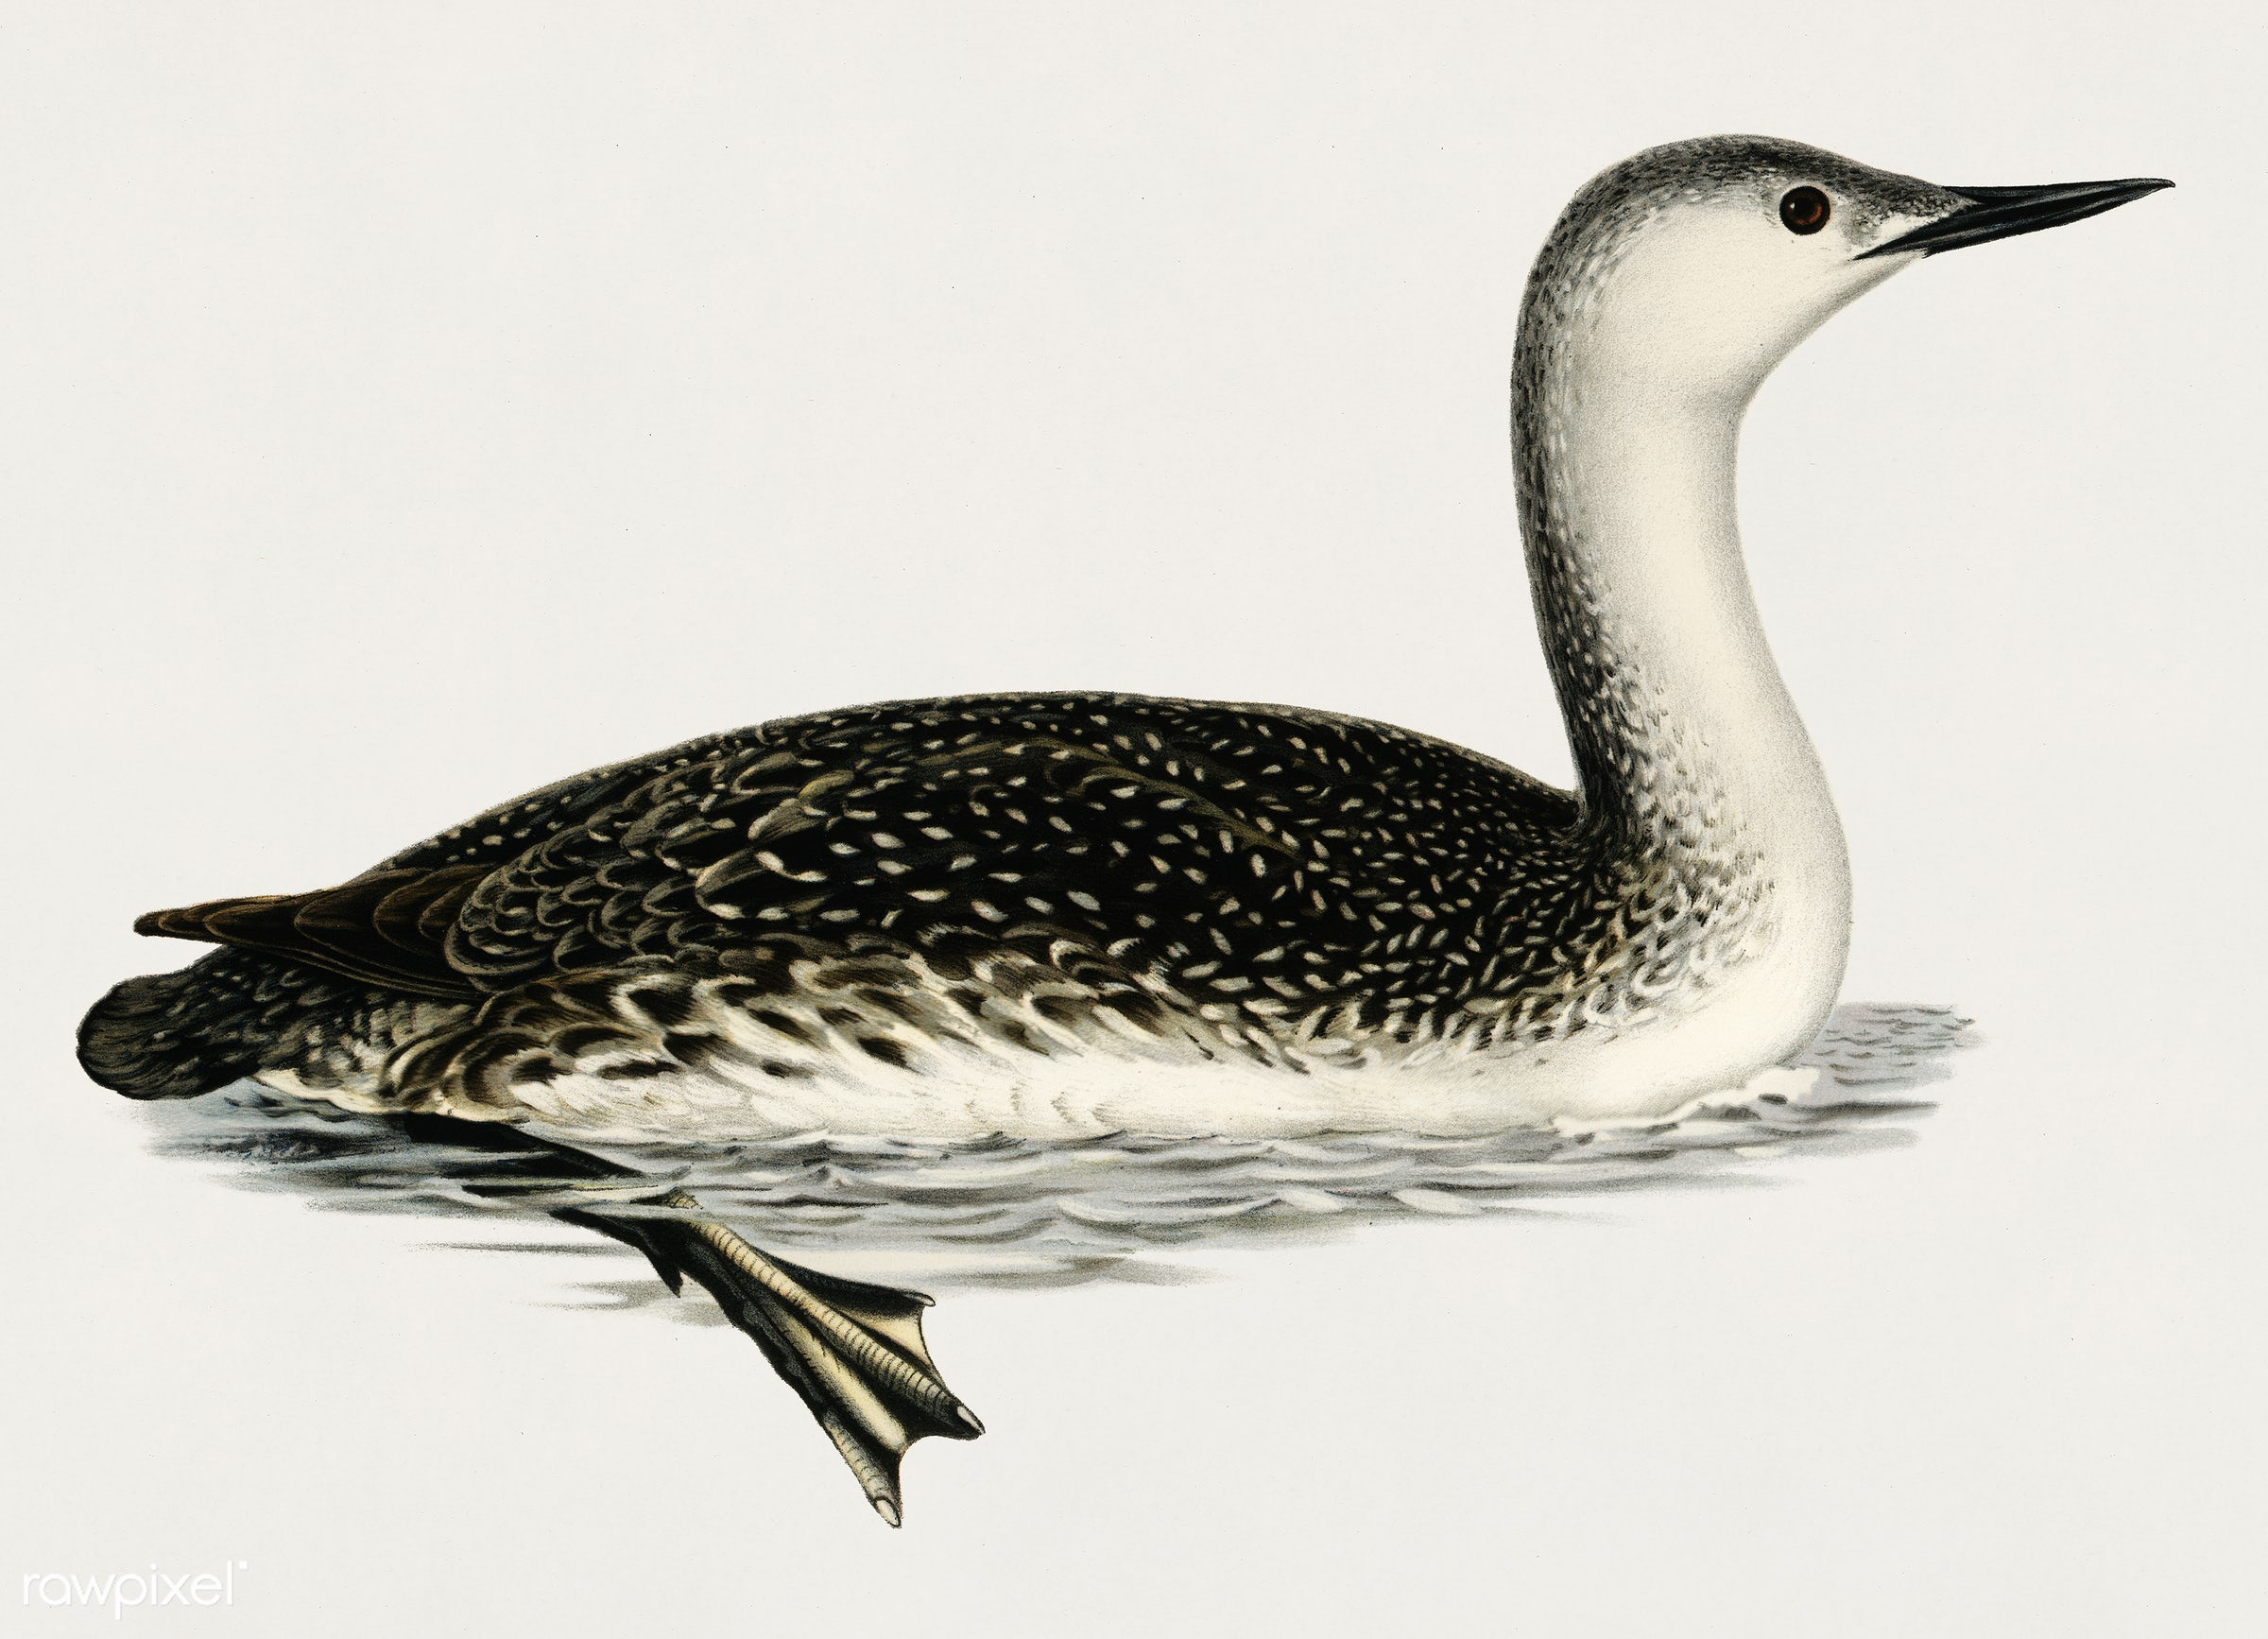 Red-thoated loon (COLYMBUS STELLATUS) illustrated by the von Wright brothers. Digitally enhanced from our own 1929 folio...